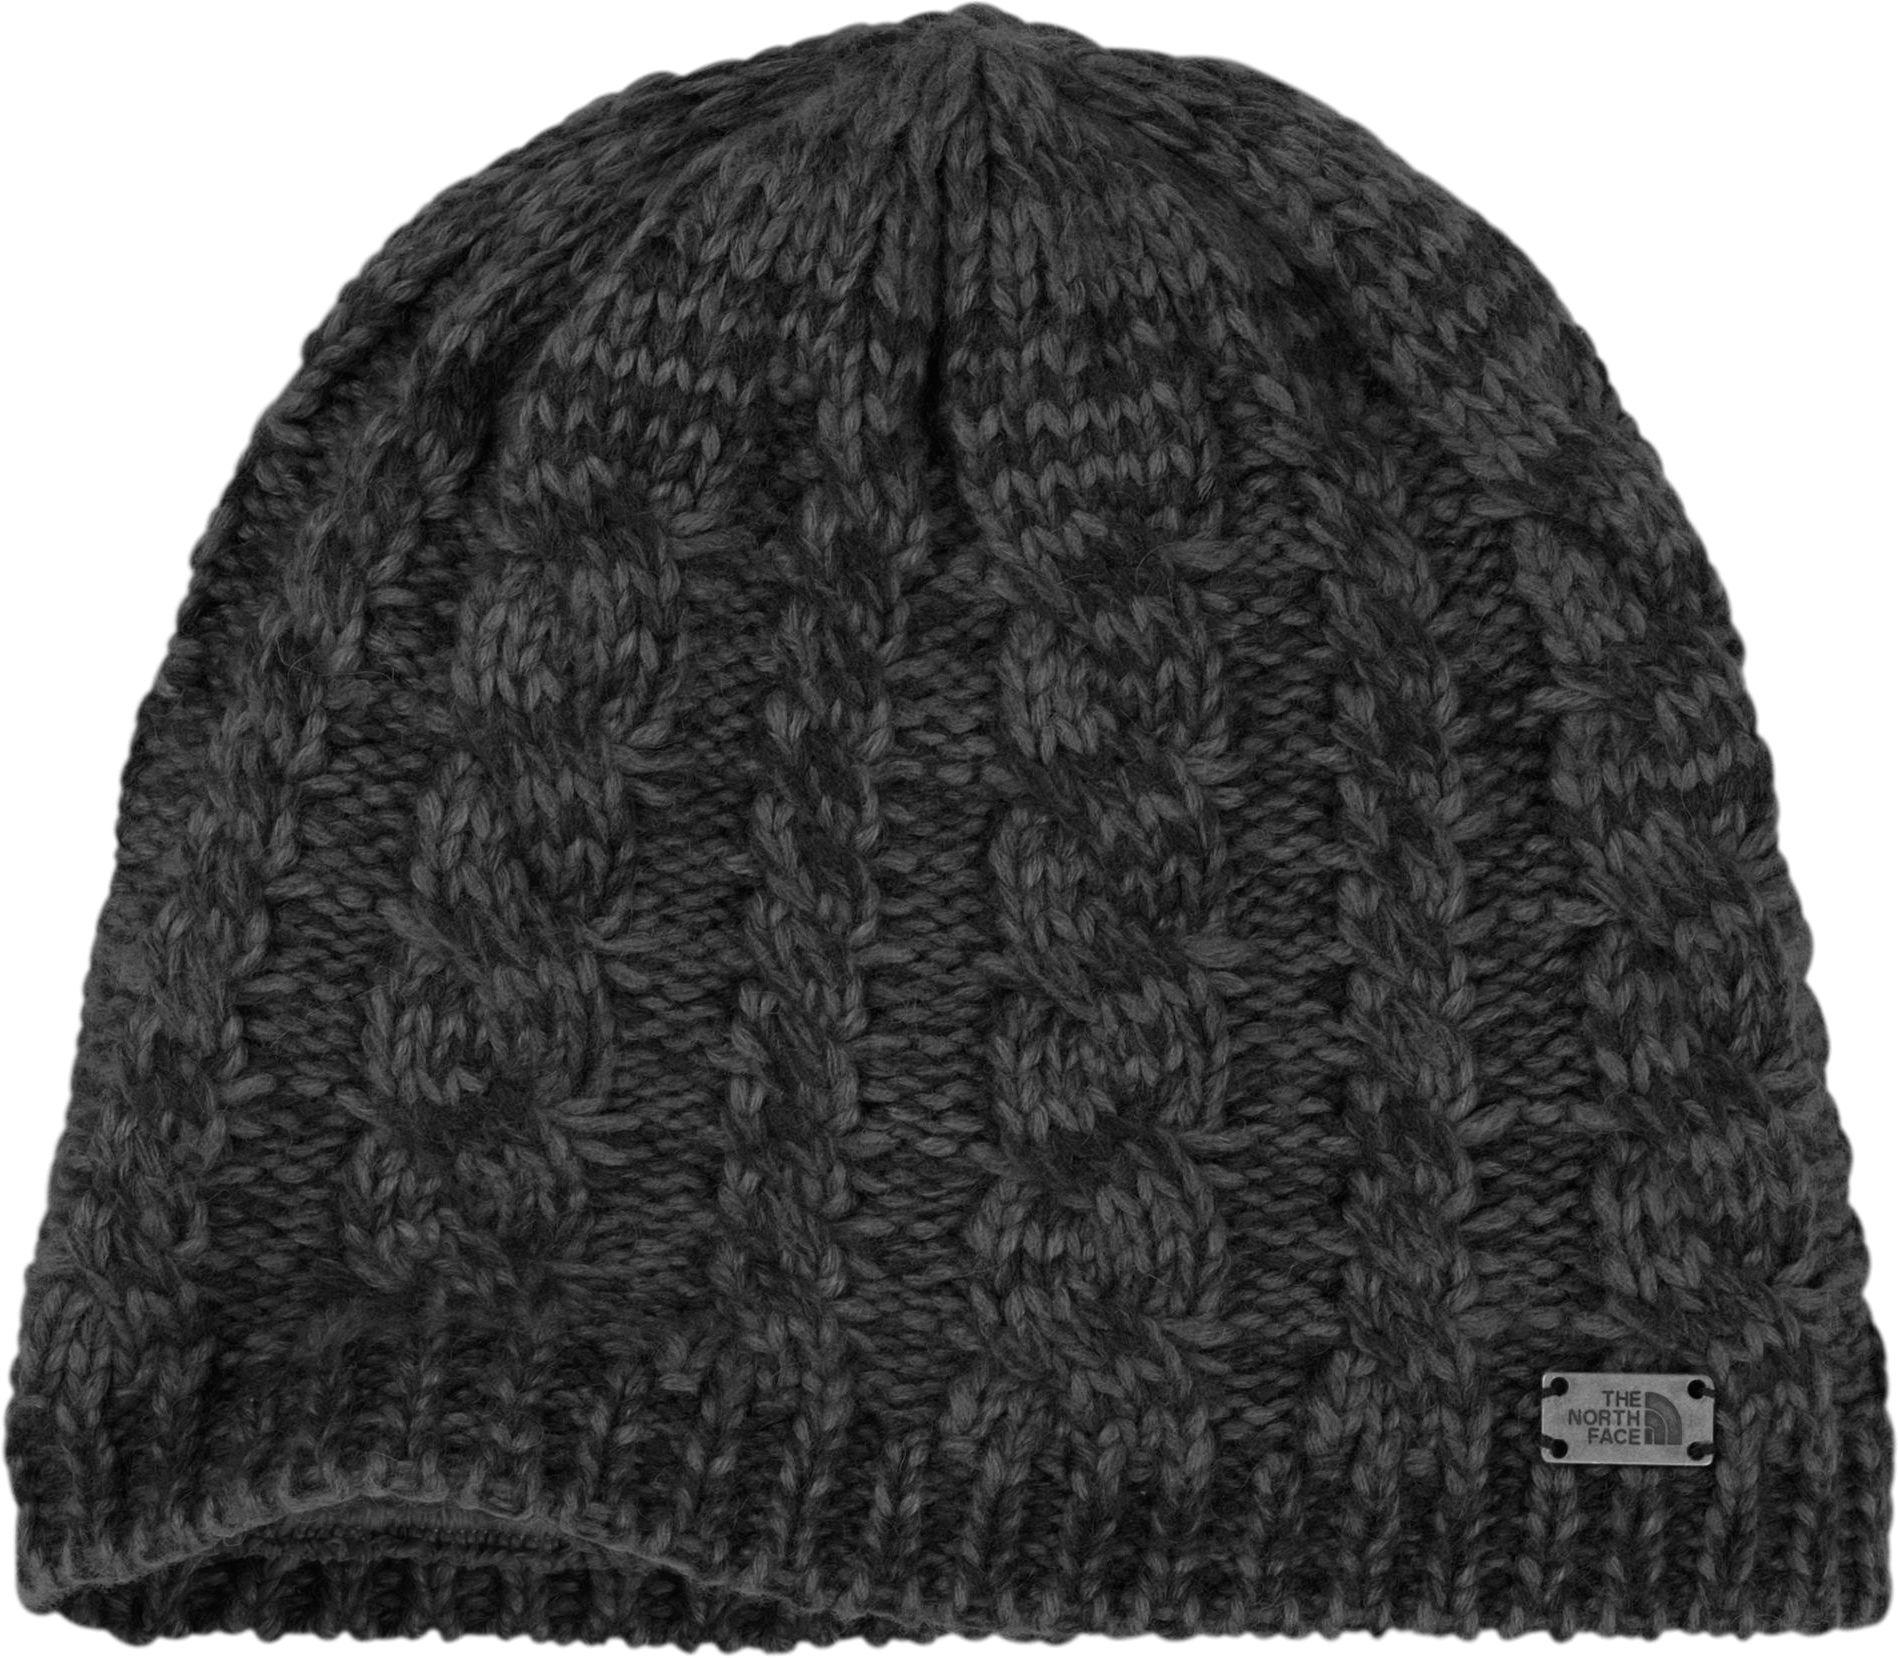 6f984628d8c6a Lyst - The North Face Fuzzy Cable Beanie in Gray